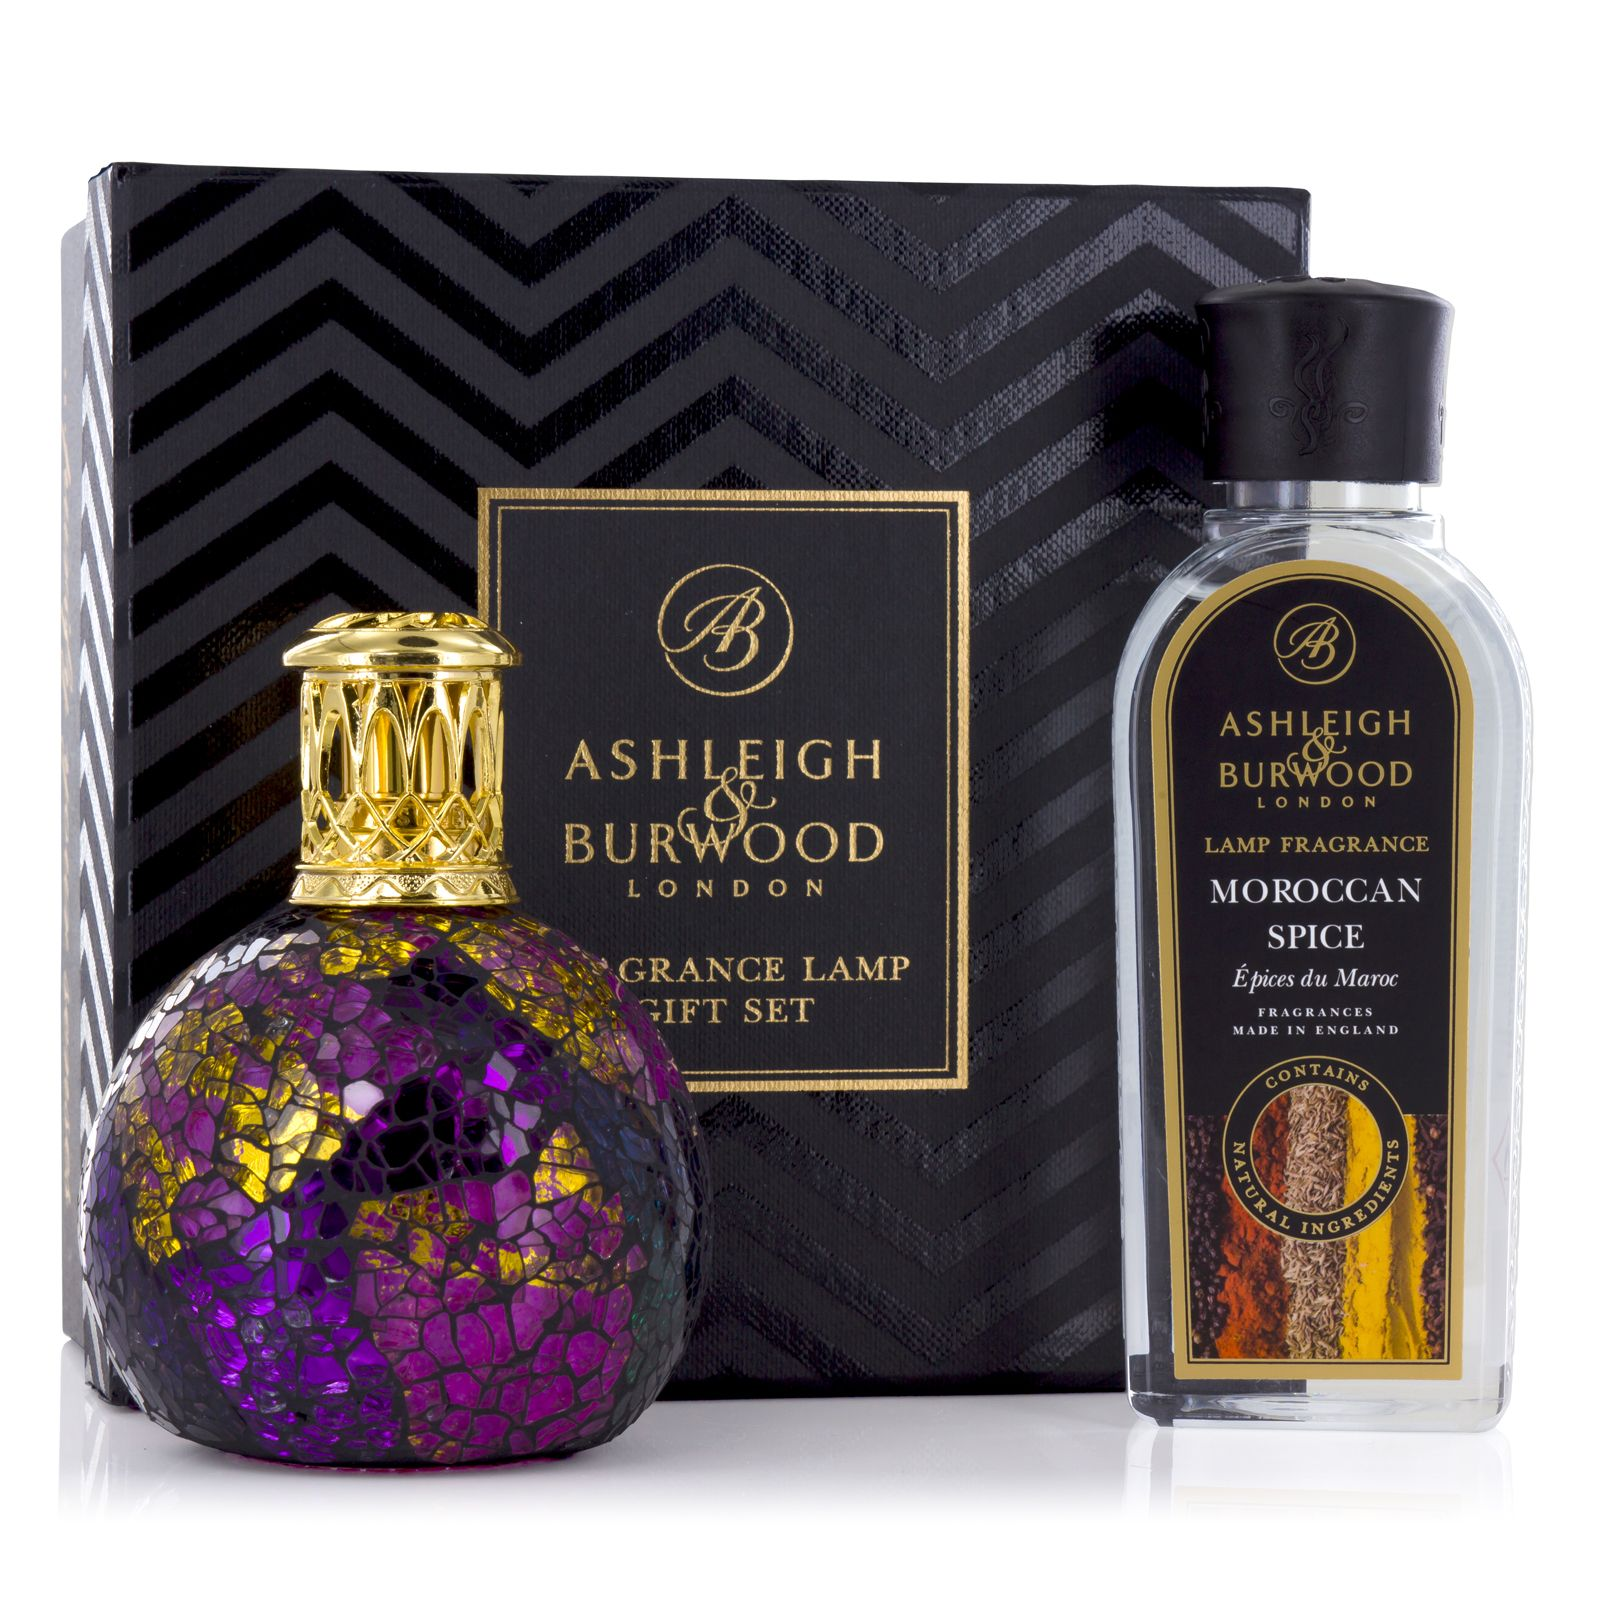 Ashleigh & Burwood Magenta Crush Fragrance Lamp Gift Set Gifts Ashleigh & Burwood